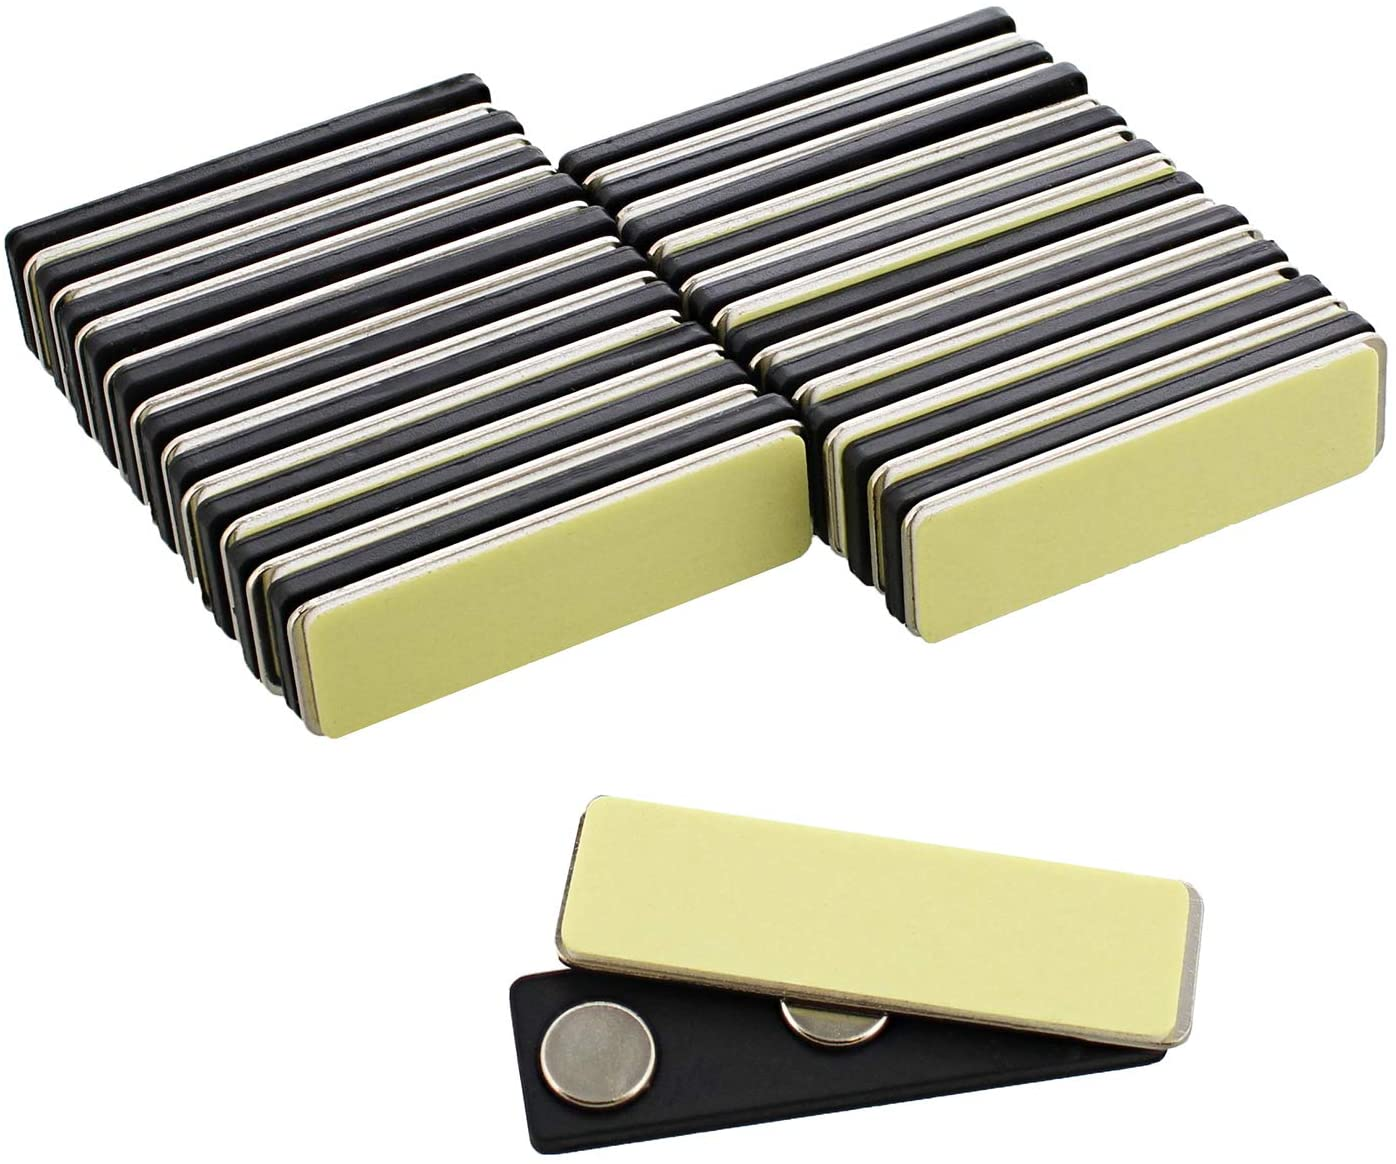 Lot45 Magnetic Name Badge Magnets - 20 Pack Magnet Name Tags Kits with Nametag Magnet Backing and Adhesive Badge Holders